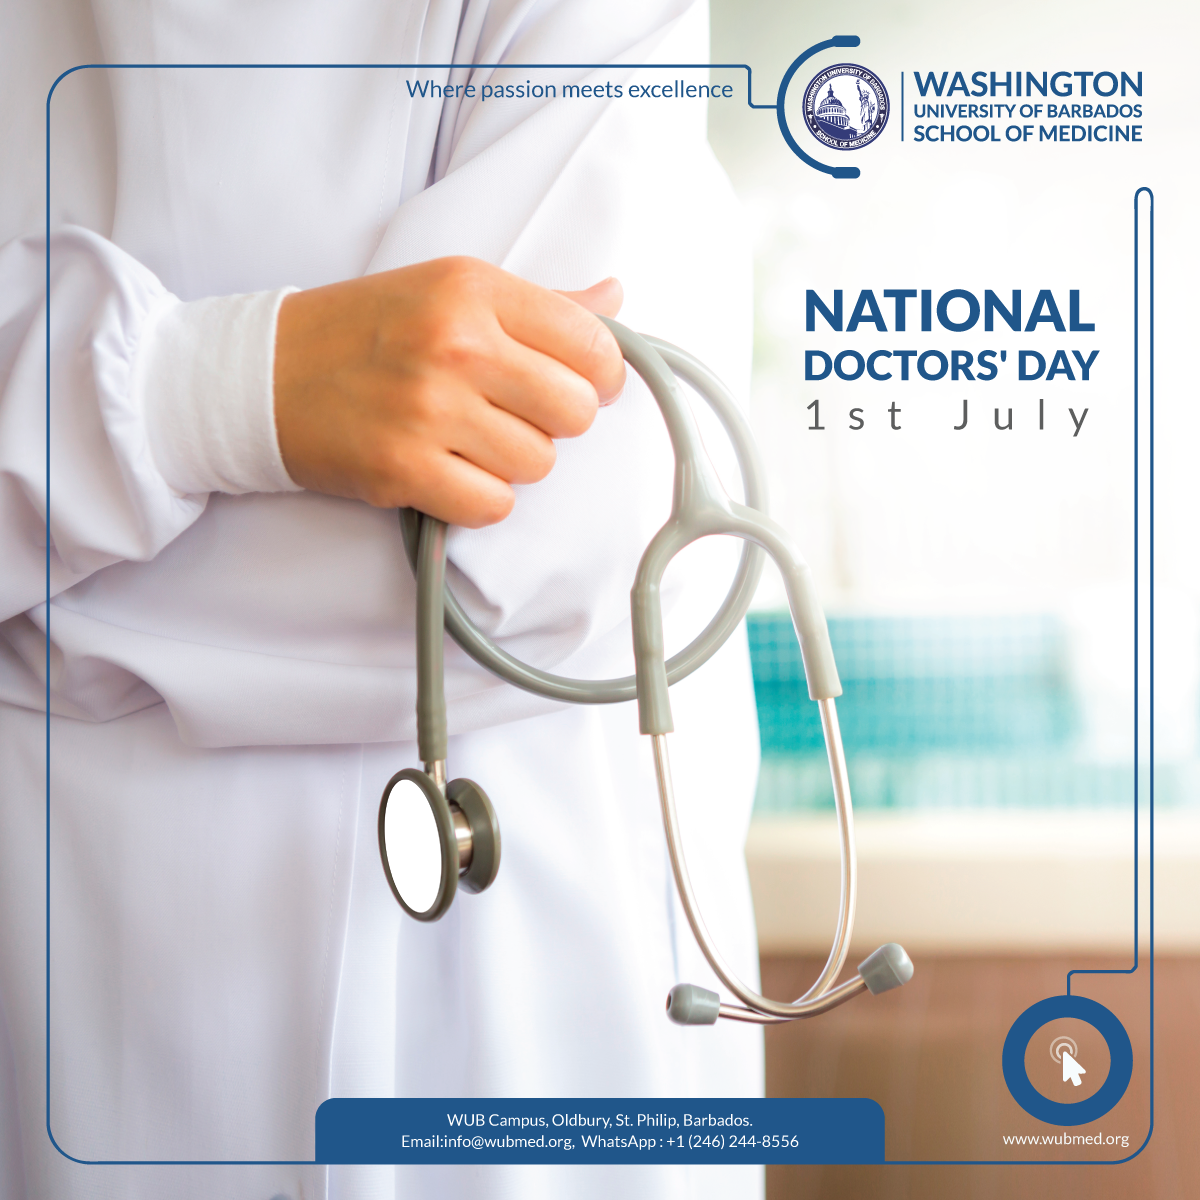 Greetings On The Occasion Of Doctorsday Washington University Of